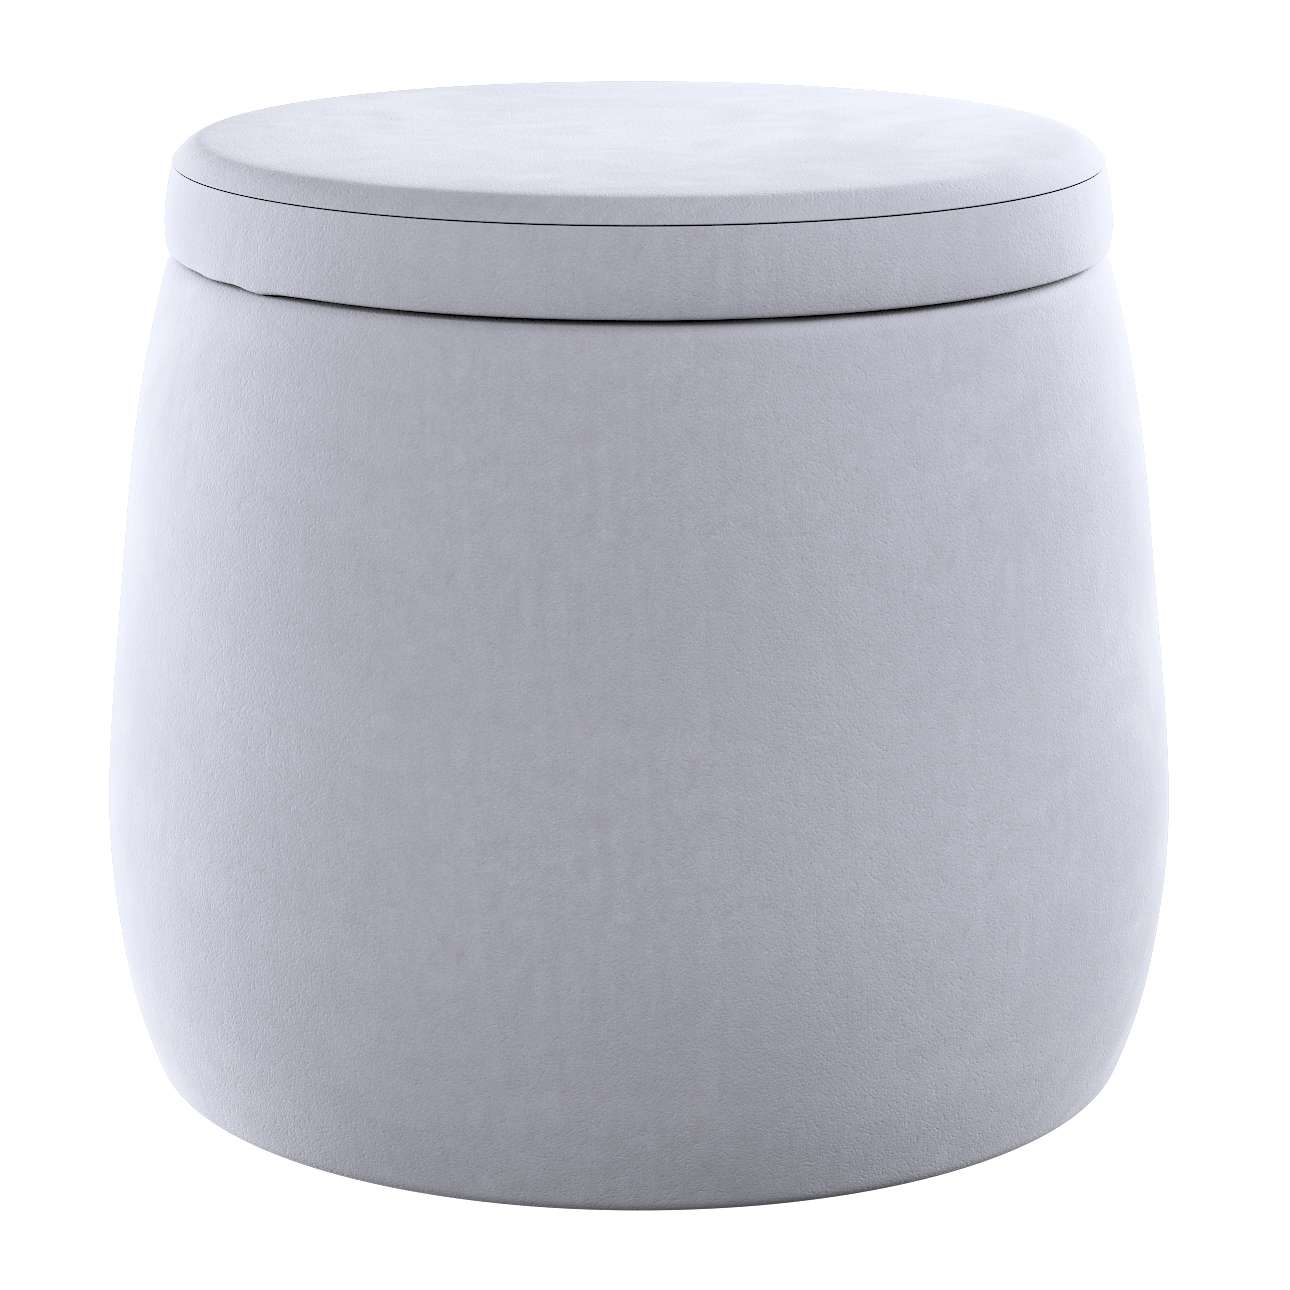 Candy Jar pouf in collection Posh Velvet, fabric: 704-24